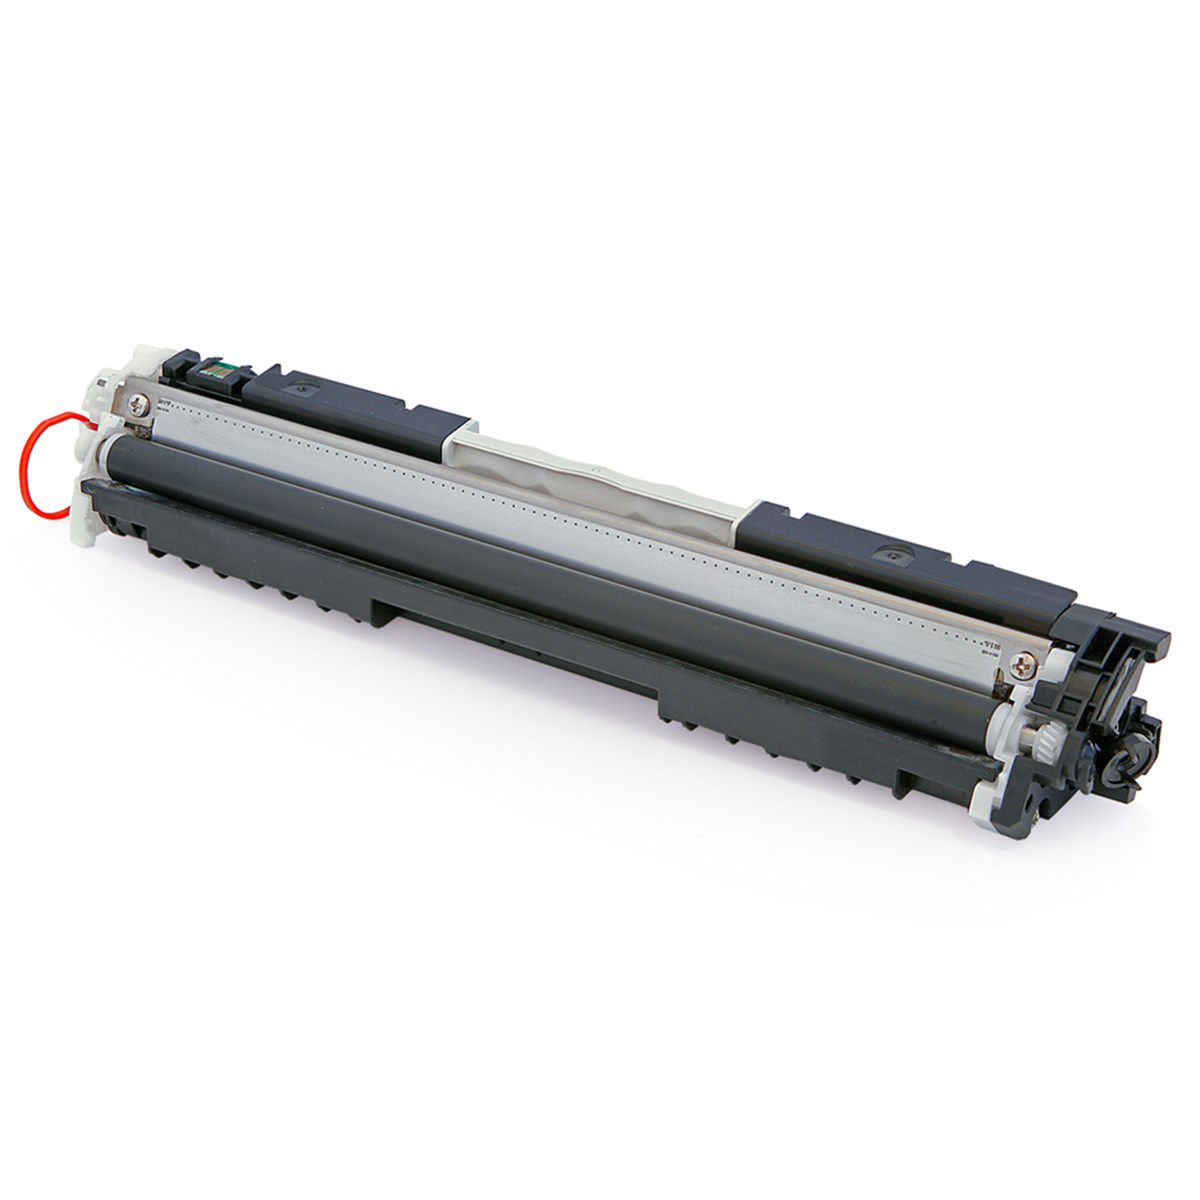 TONER COMPATIVEL HP 1025/312 126A YELLOW - ARES